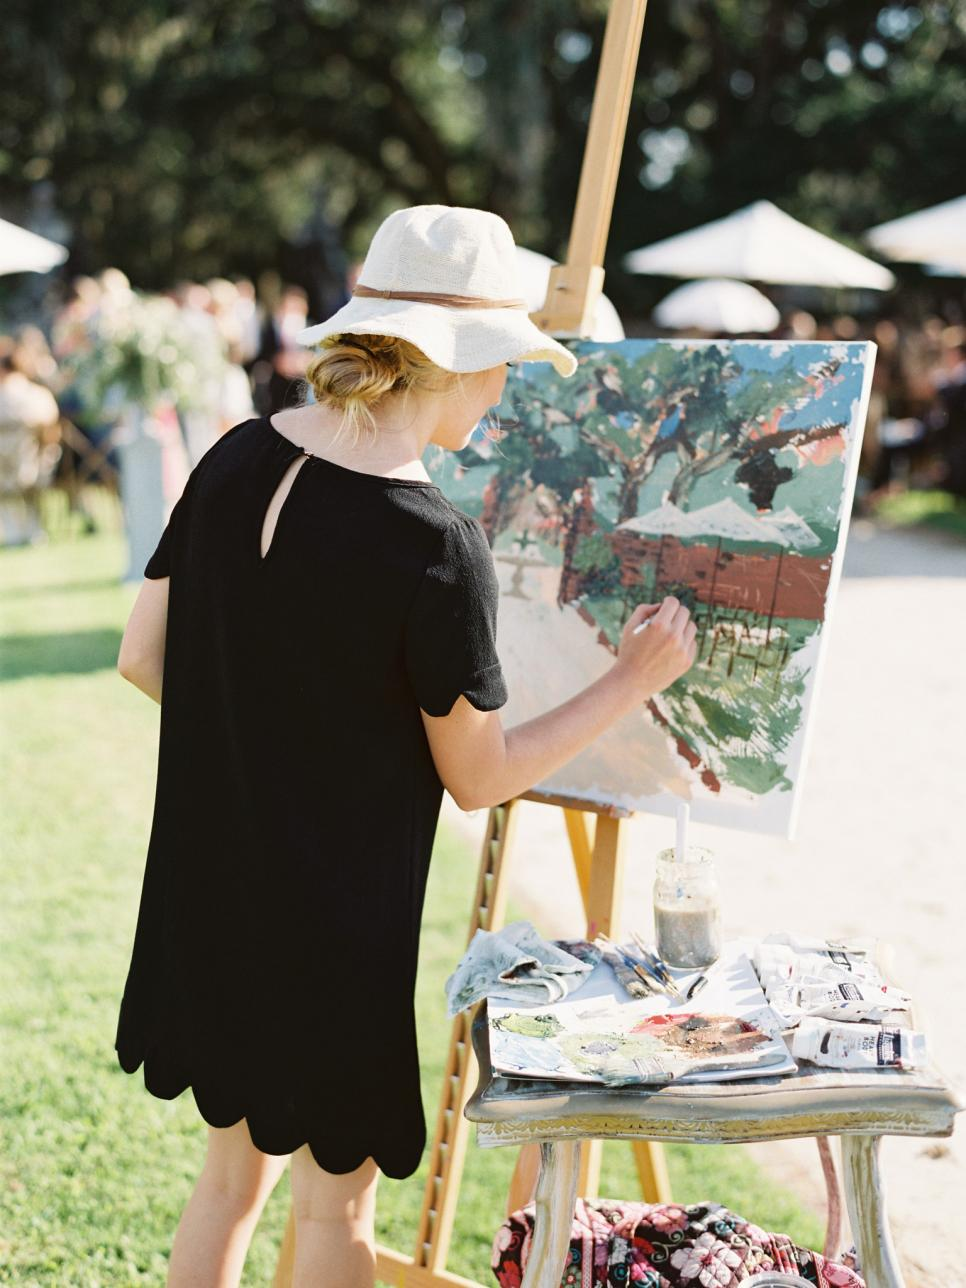 Artist Creates a Live Painting of a Sunny Wedding Reception